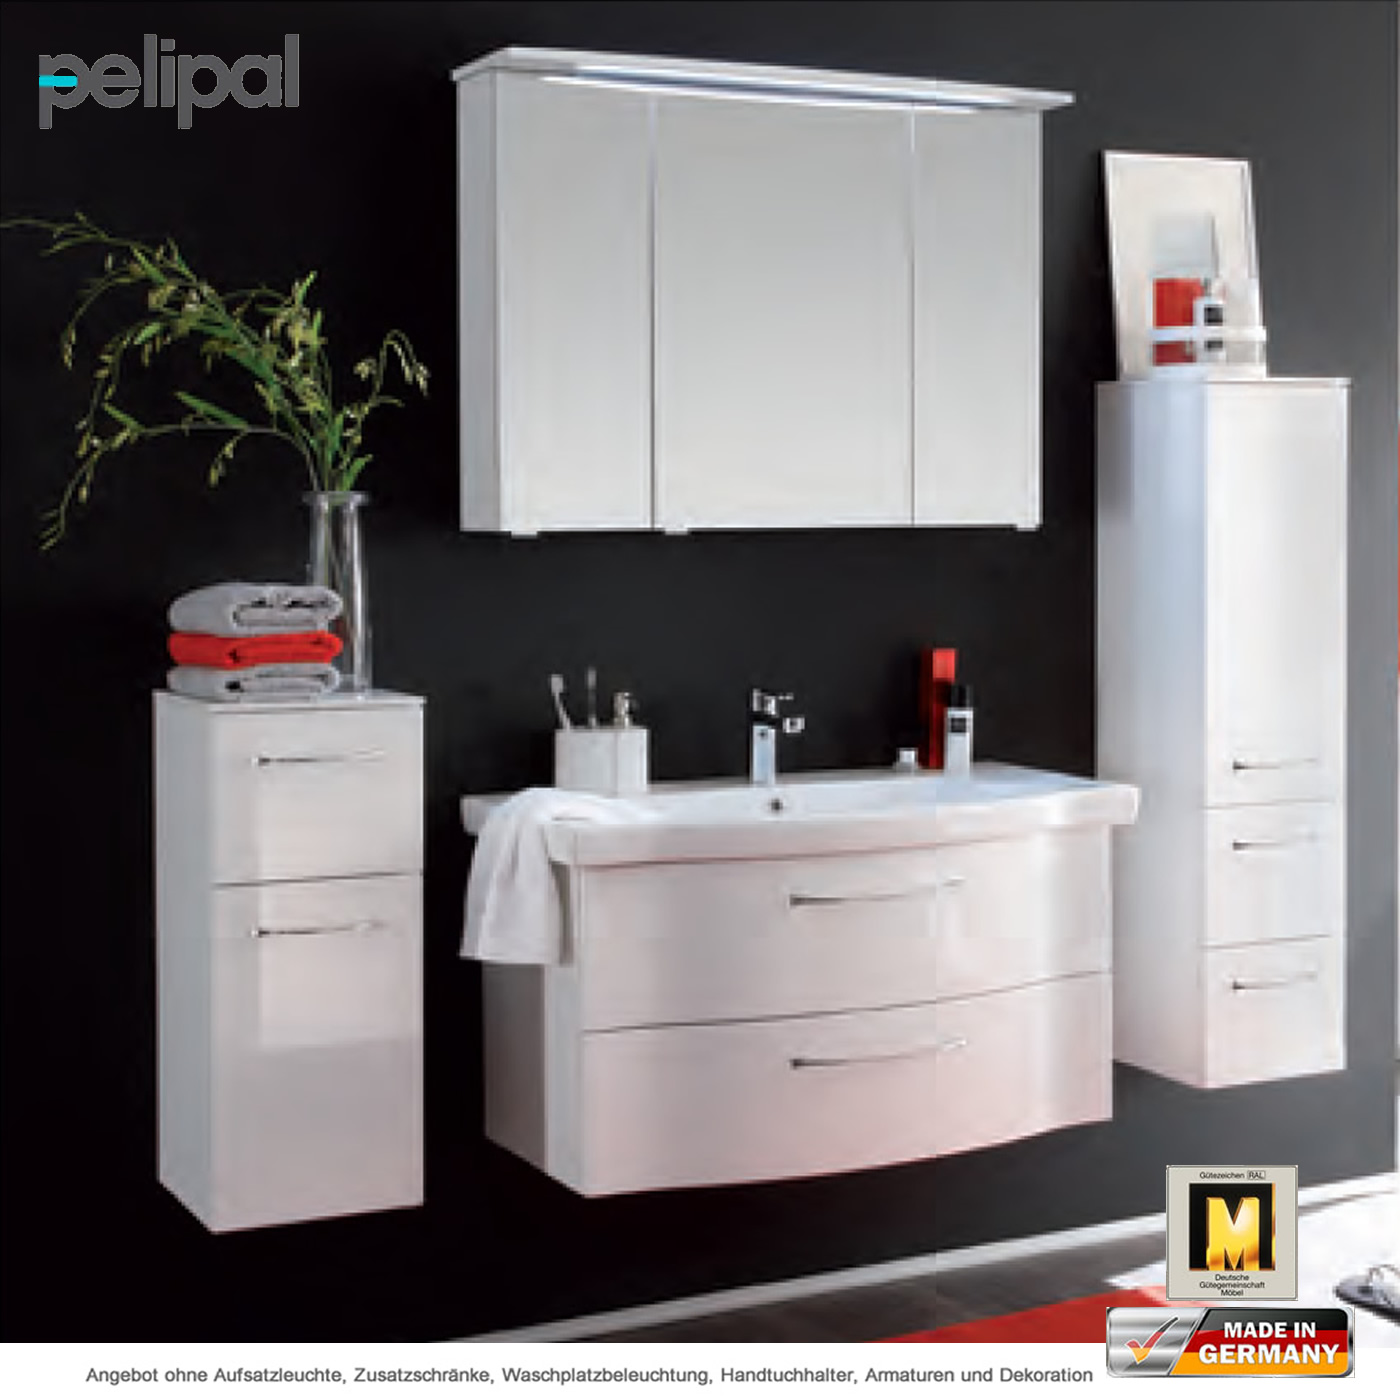 pelipal solitaire 6005 badm belset 90 cm mit led spiegelschrank und waschtischset mit 2 ausz gen. Black Bedroom Furniture Sets. Home Design Ideas